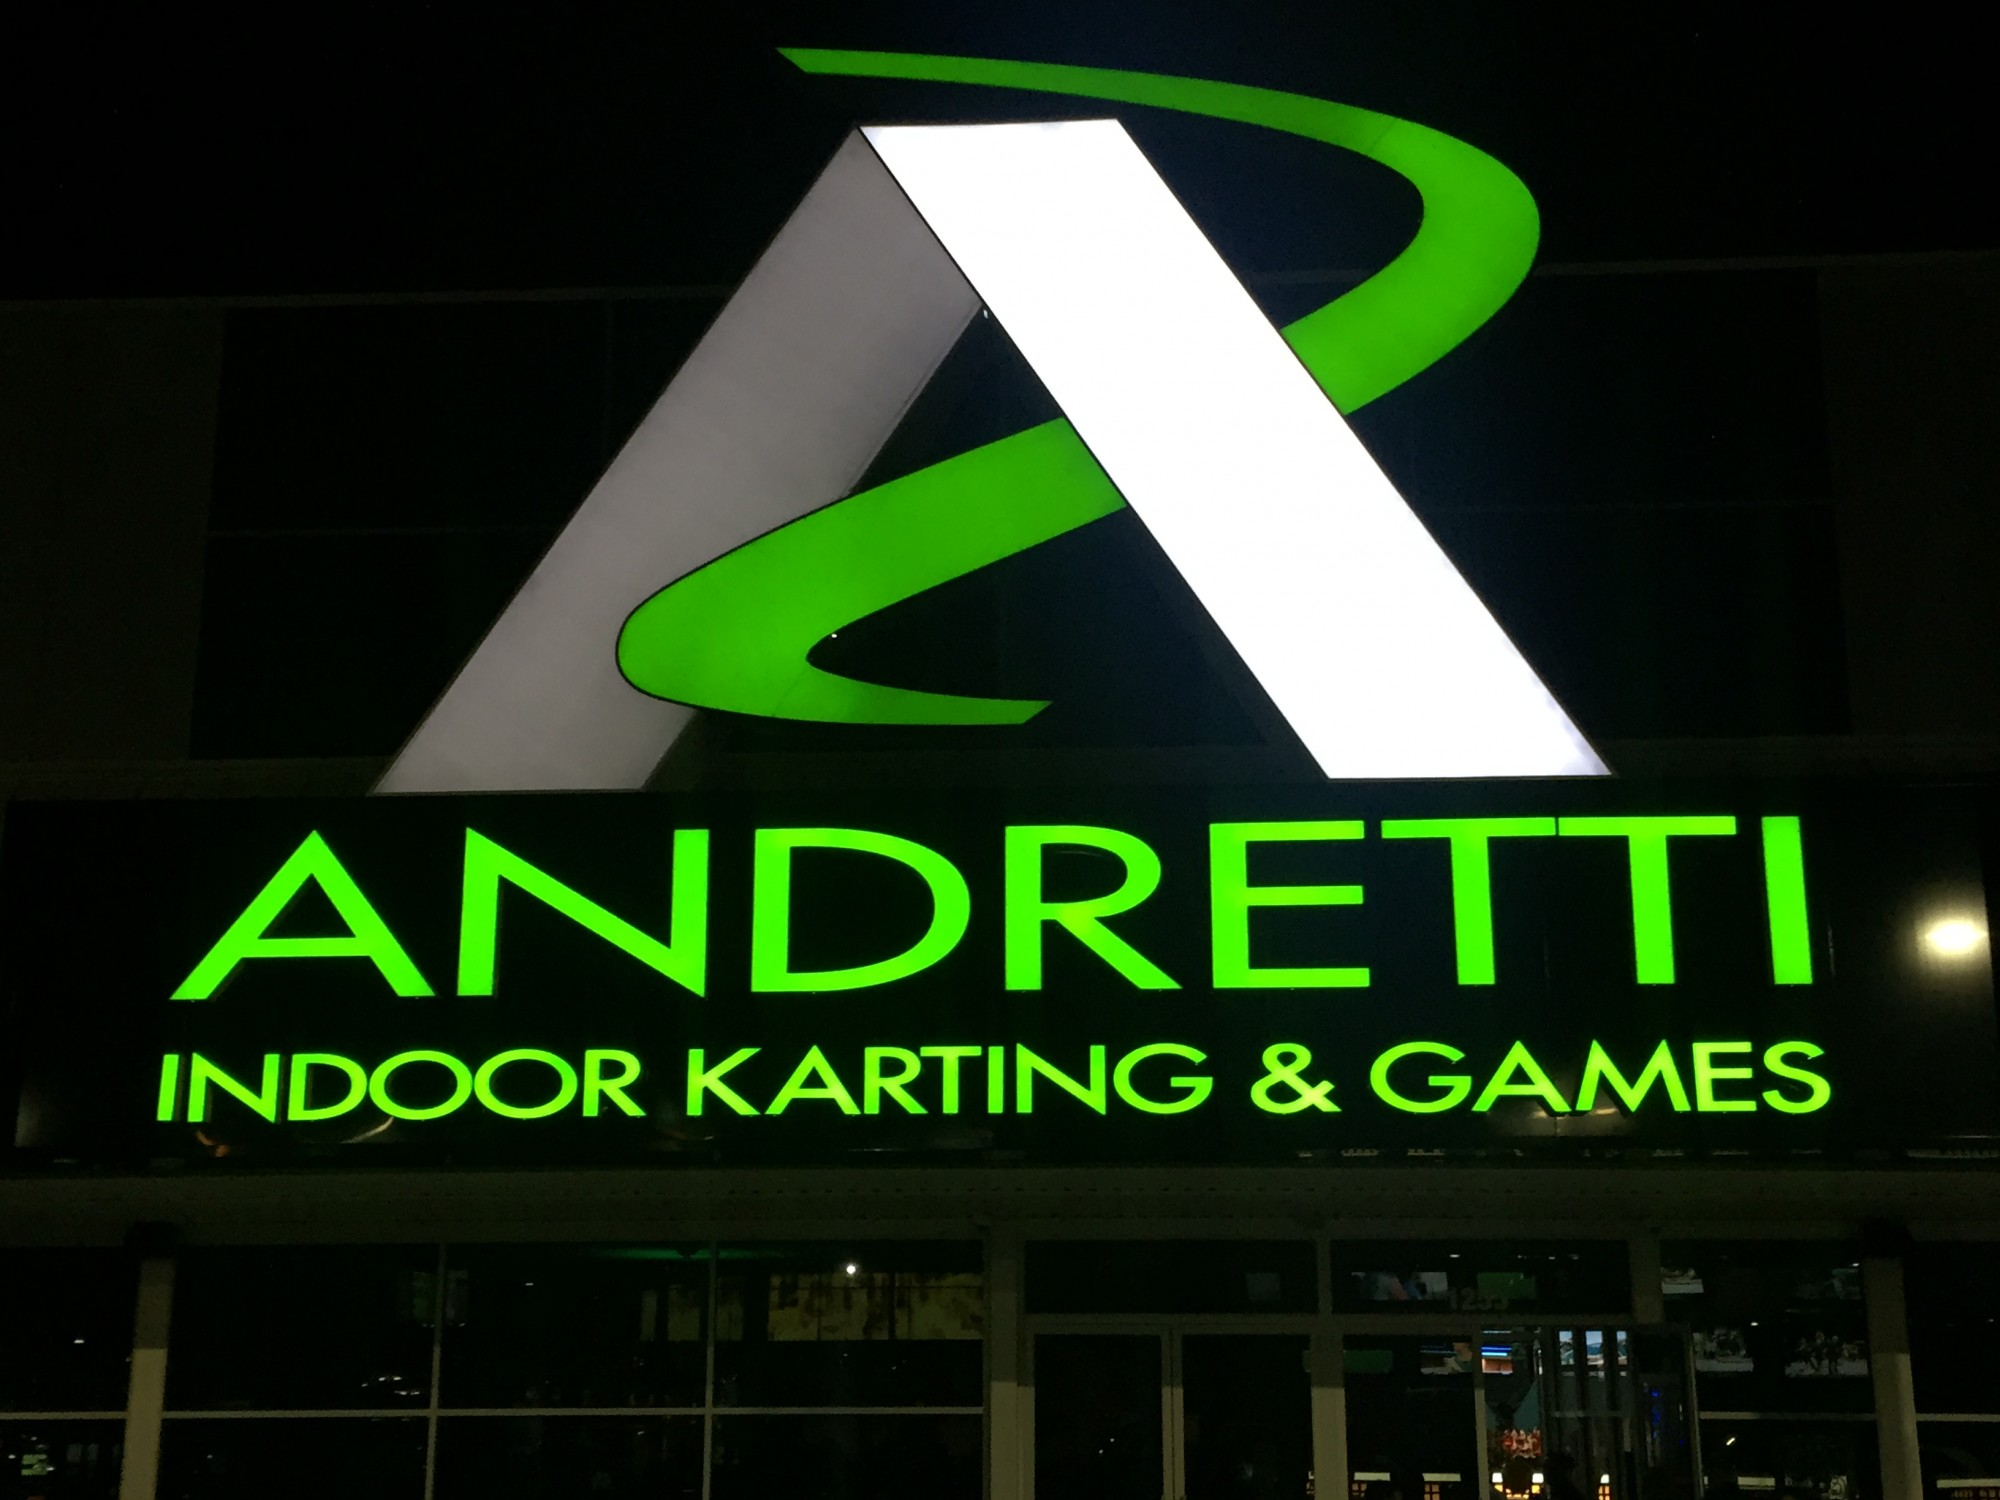 Andretti Indoor Karting Amp Games Marietta Ga Ccs Image Group